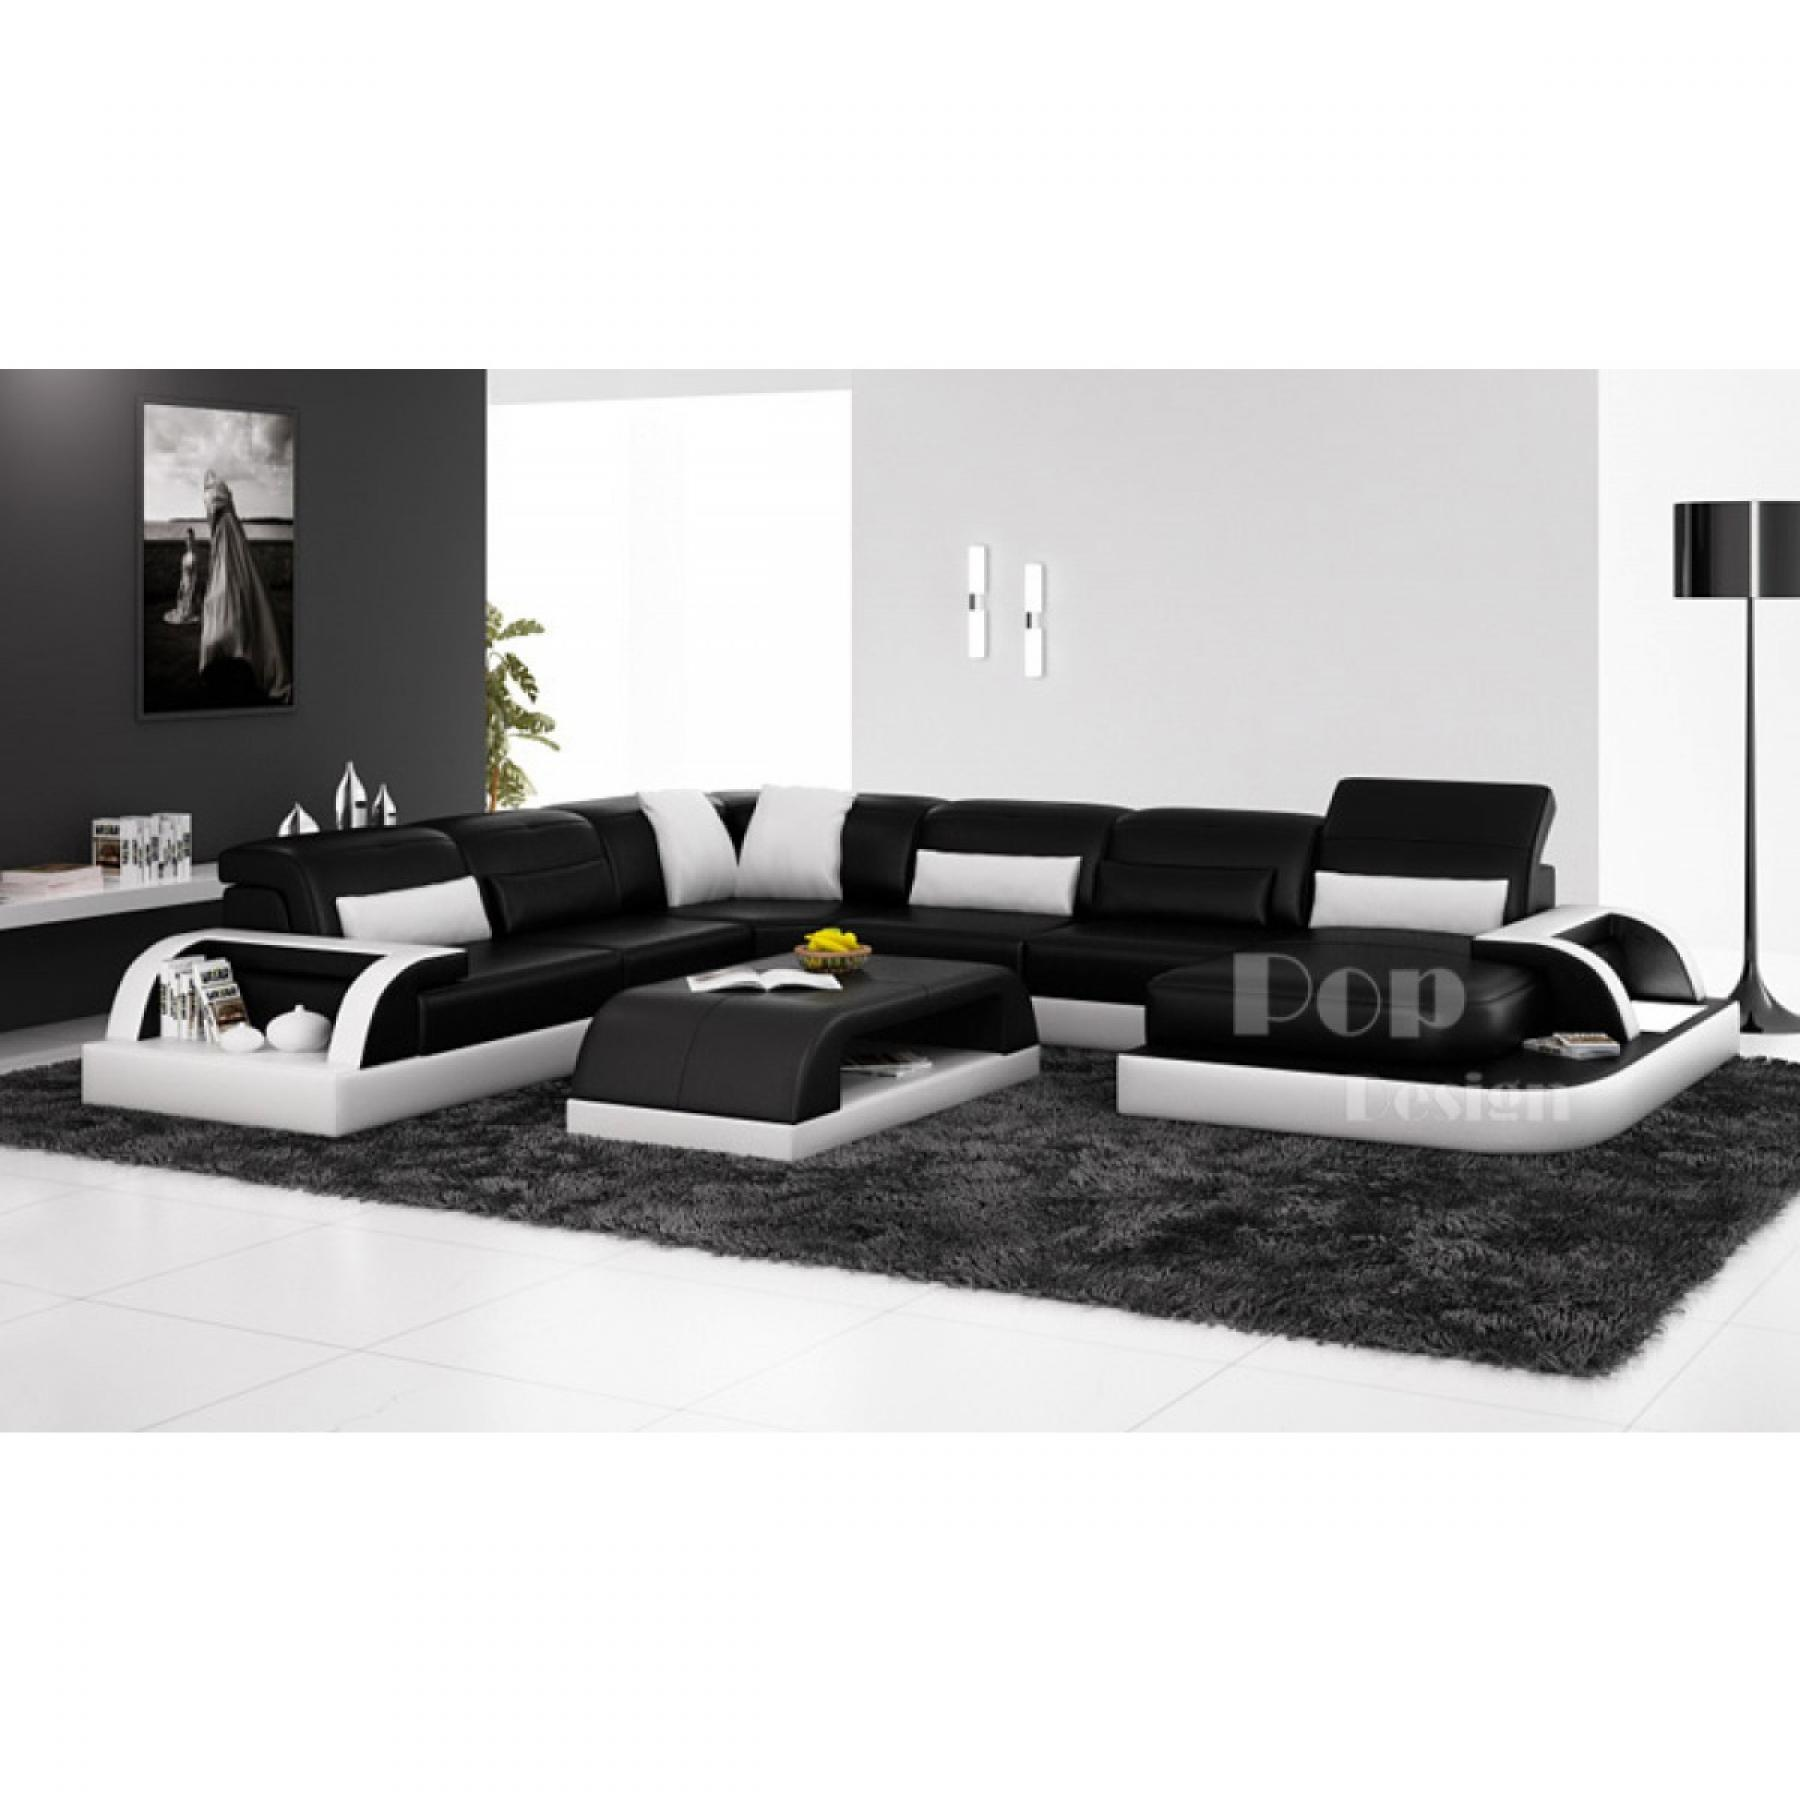 photos canap d 39 angle design noir et blanc. Black Bedroom Furniture Sets. Home Design Ideas